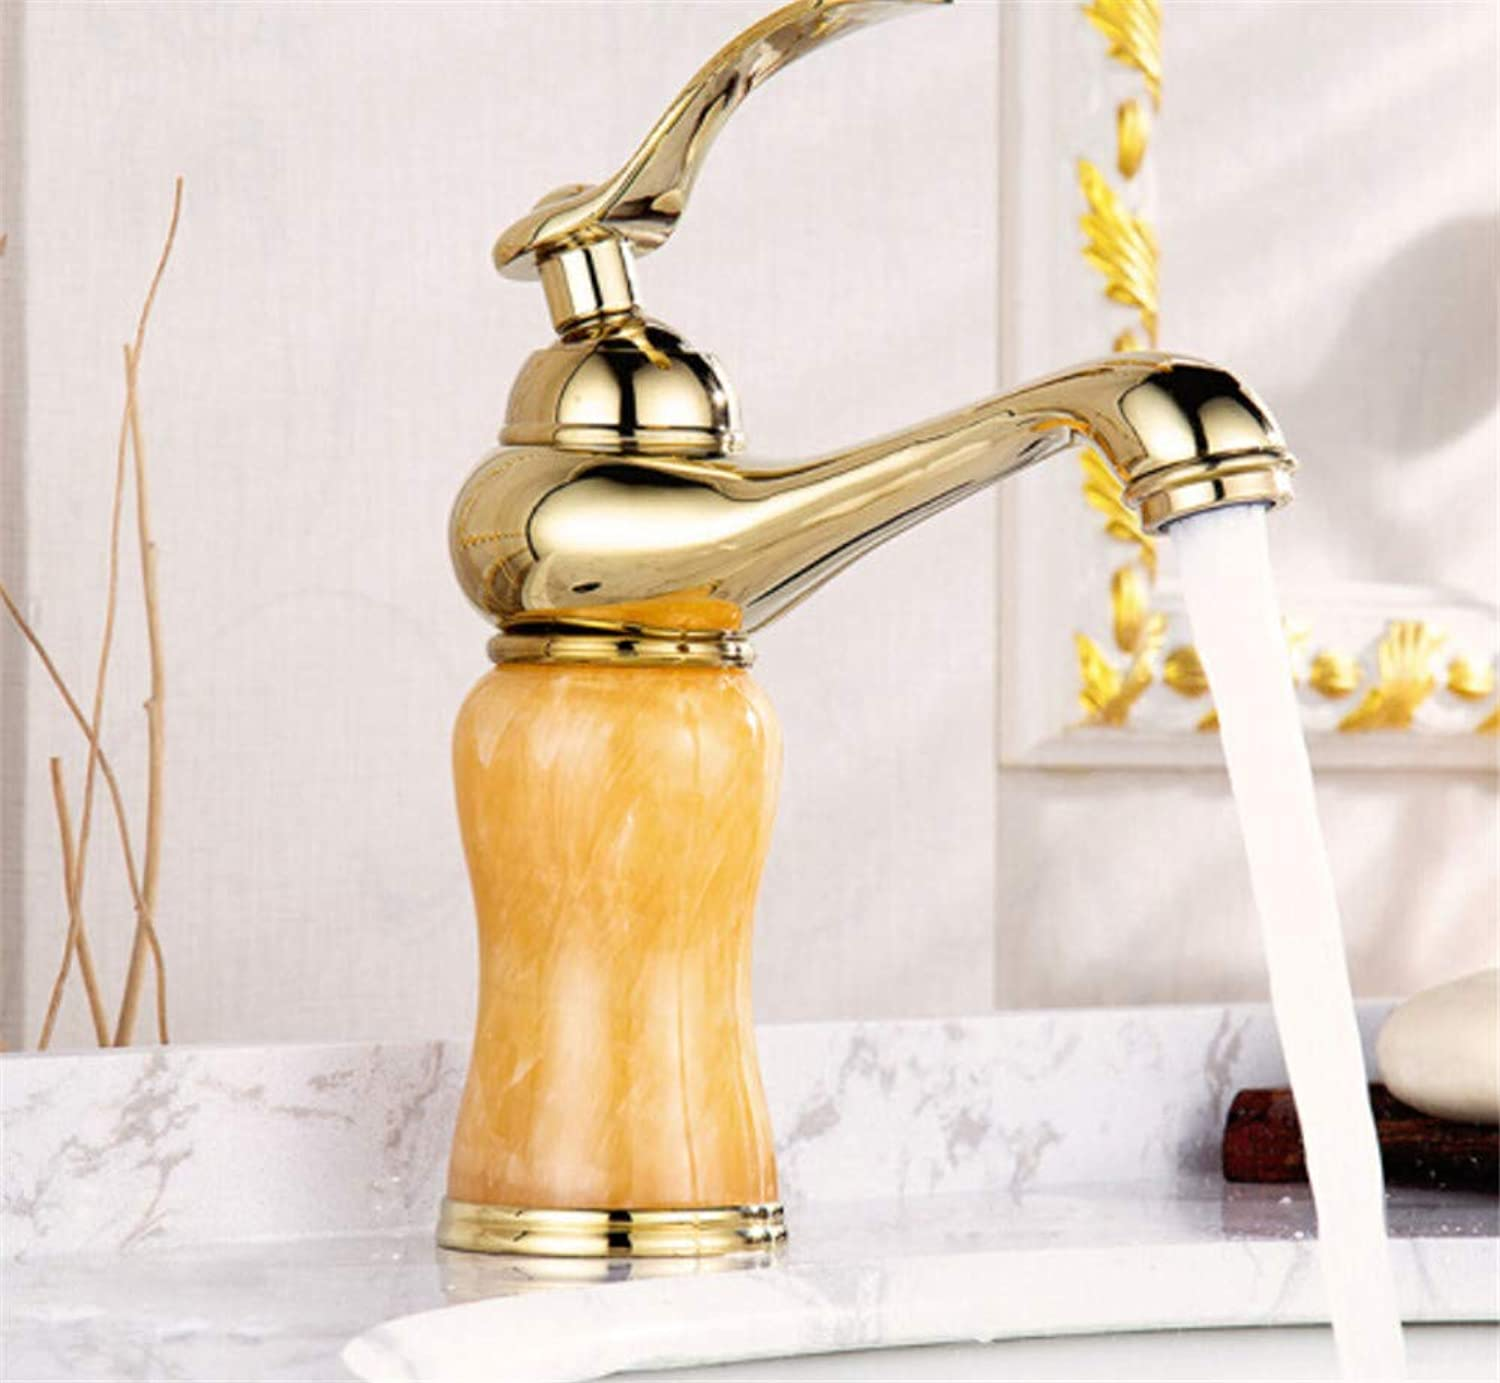 redOOY Bathroom Sink Taps Copper Retro Faucet Hot And Cold Bathroom Cabinet Basin Faucet Wash Basin Wash Basin Sink Sink Antique Faucet gold